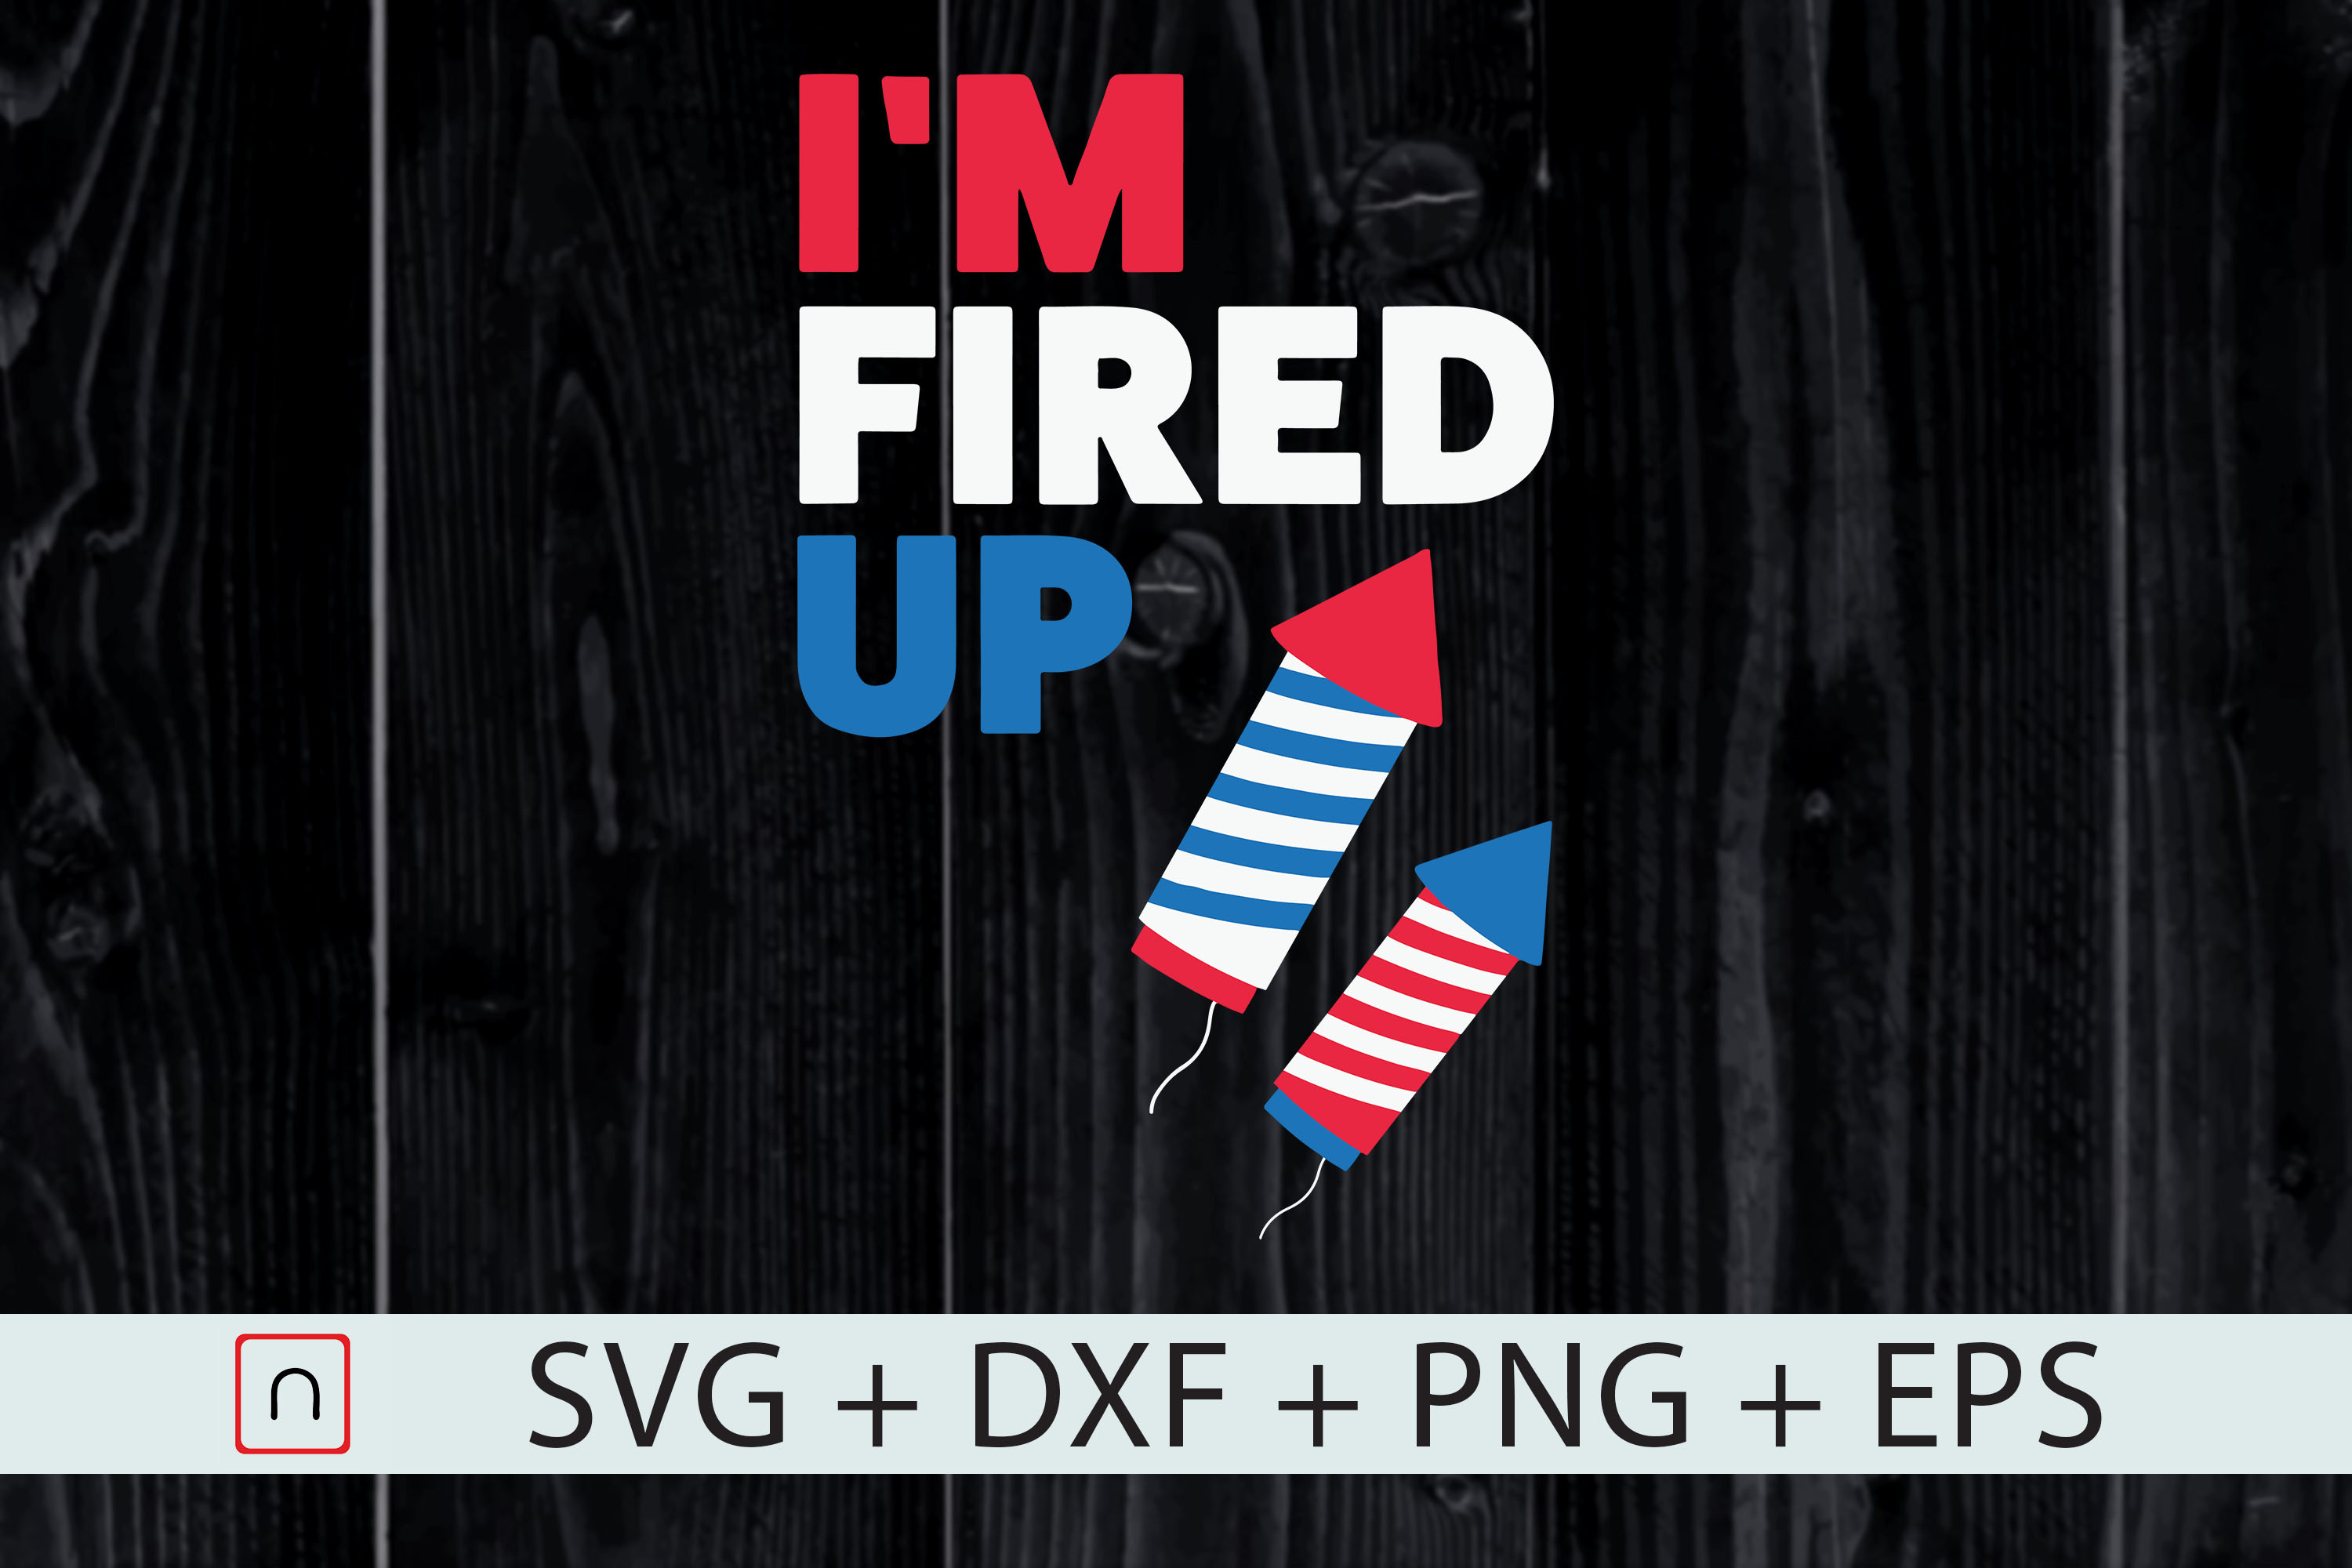 Download Free Fireworks Director Men Fired Up July Graphic By Novalia for Cricut Explore, Silhouette and other cutting machines.